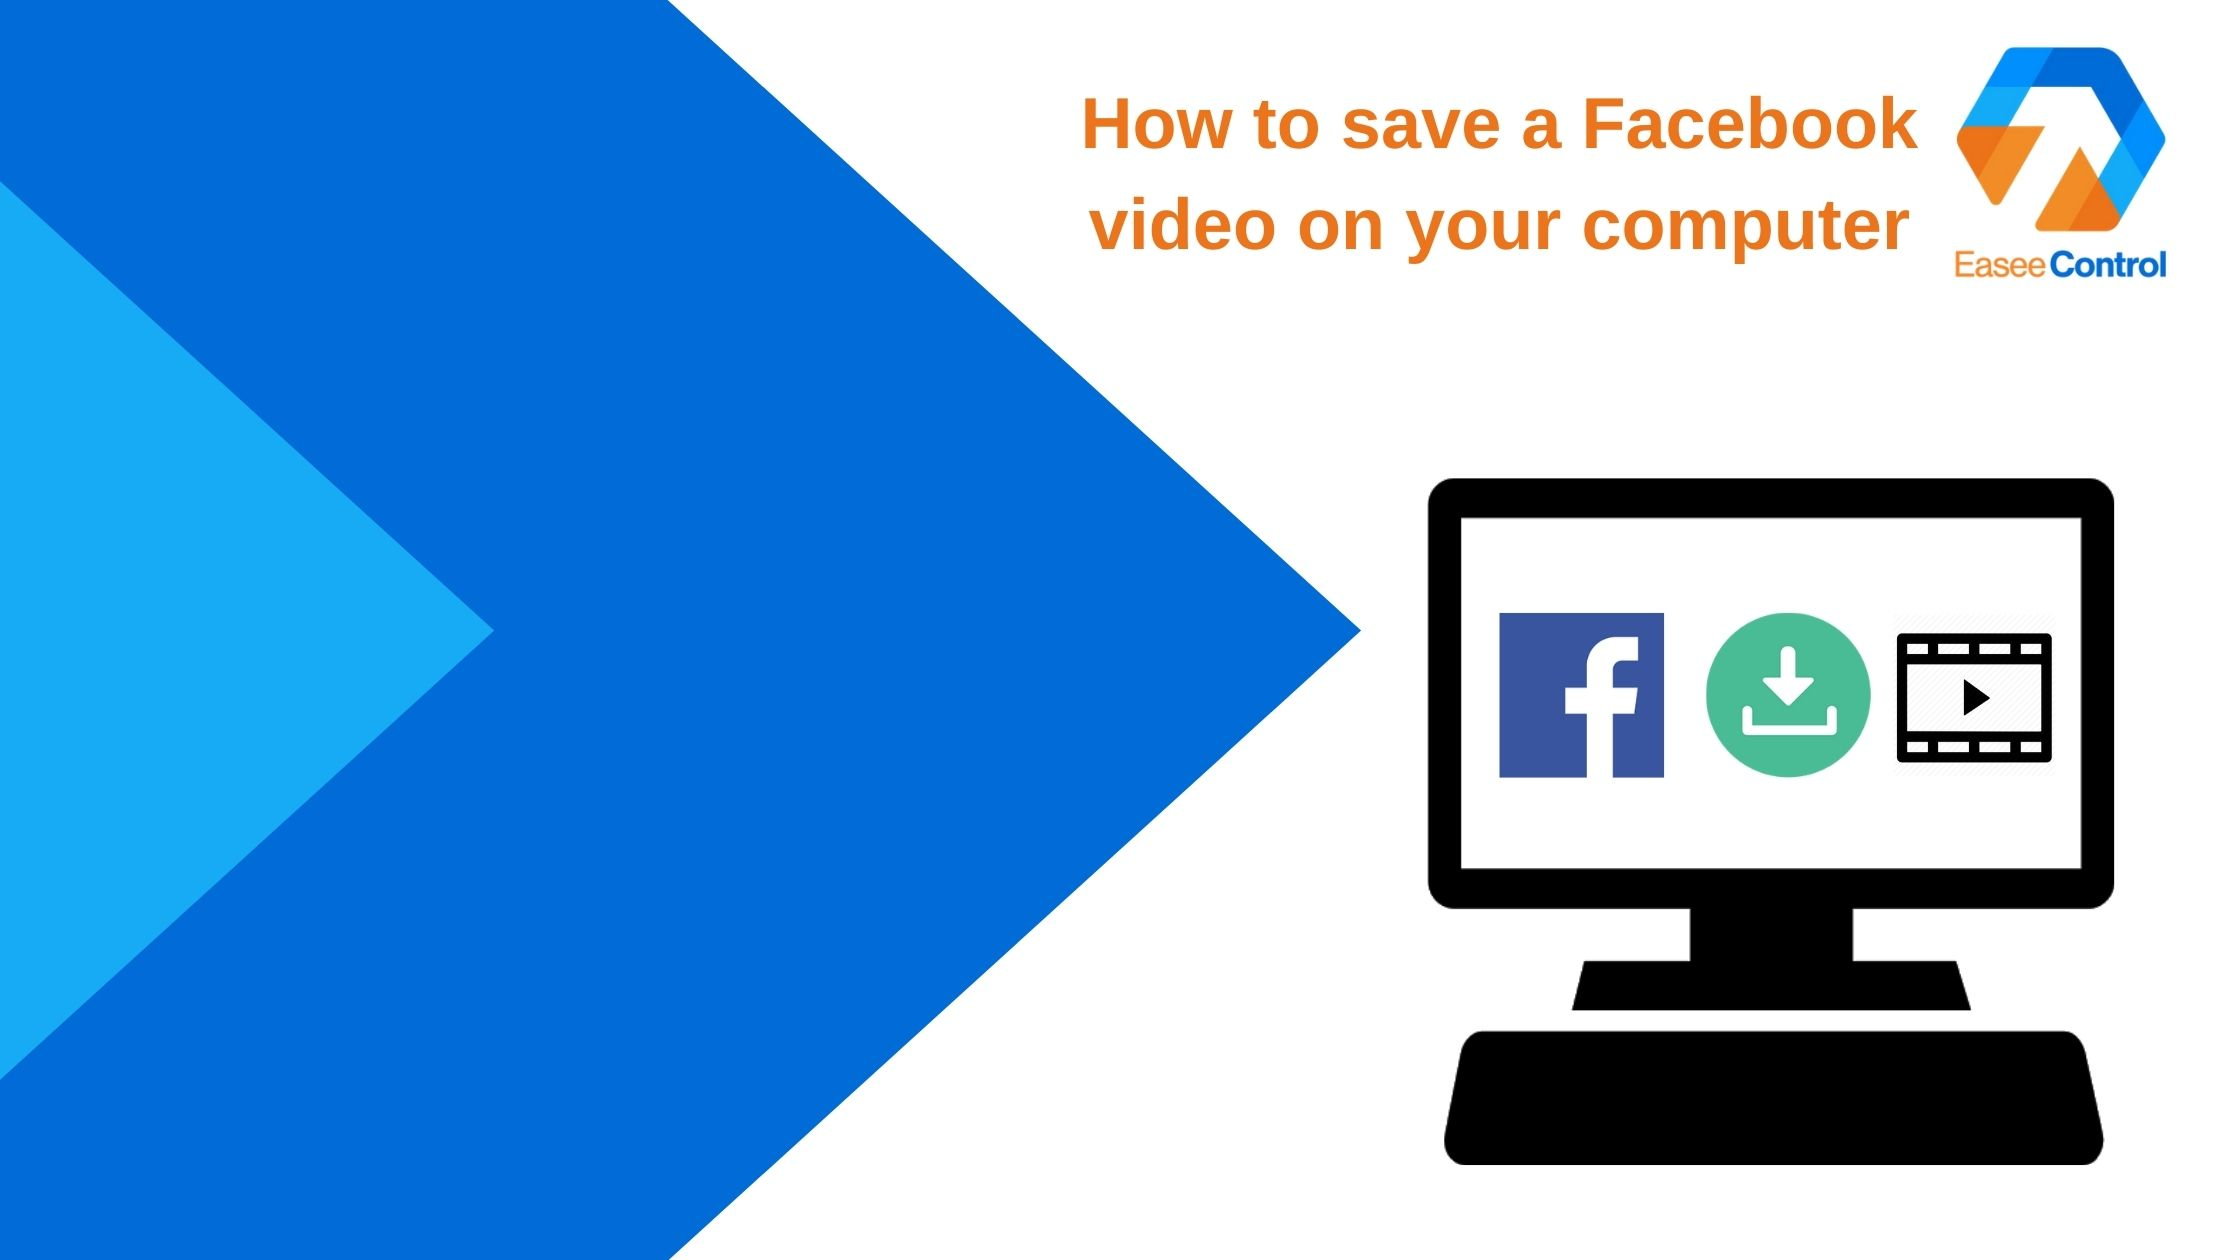 Save video from Facebook on computer